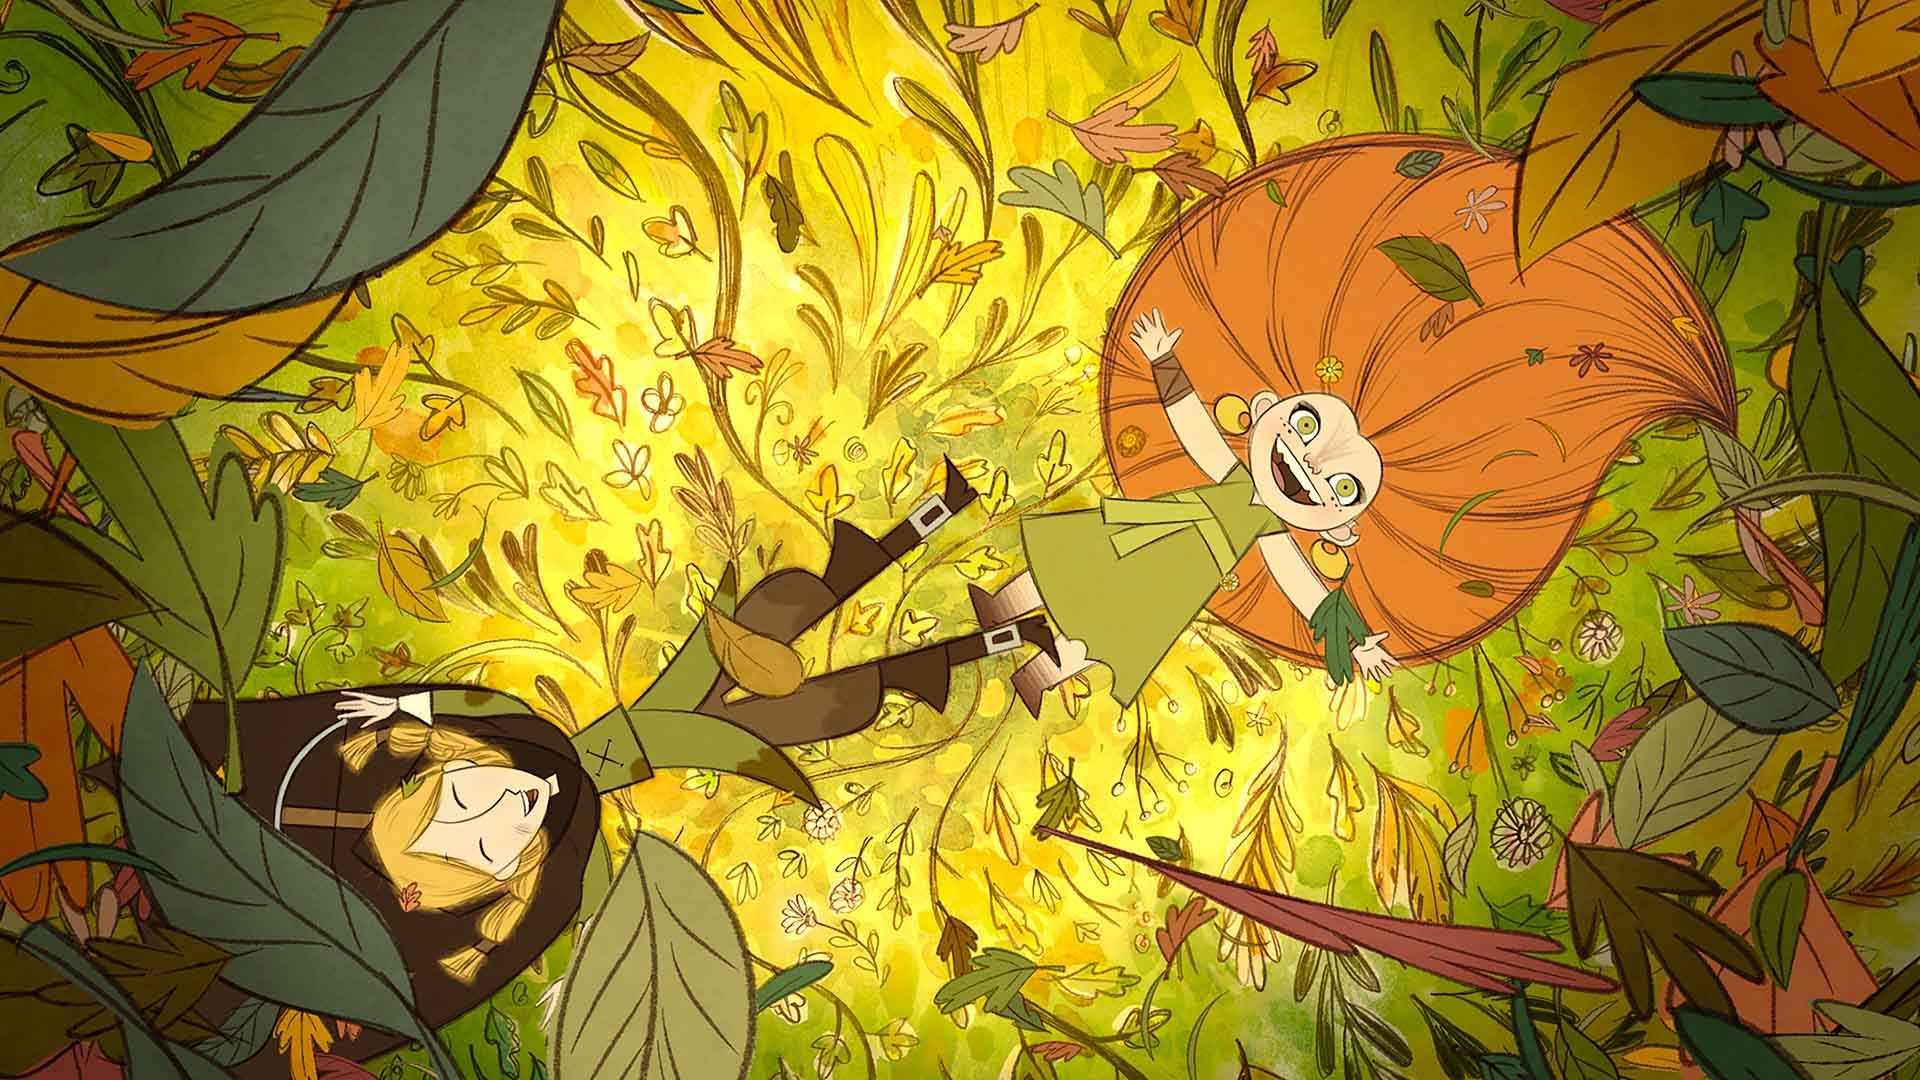 Wolfwalkers Review: The Best And Most Beautiful Animated Movie Of The Year  - Pay Or Wait